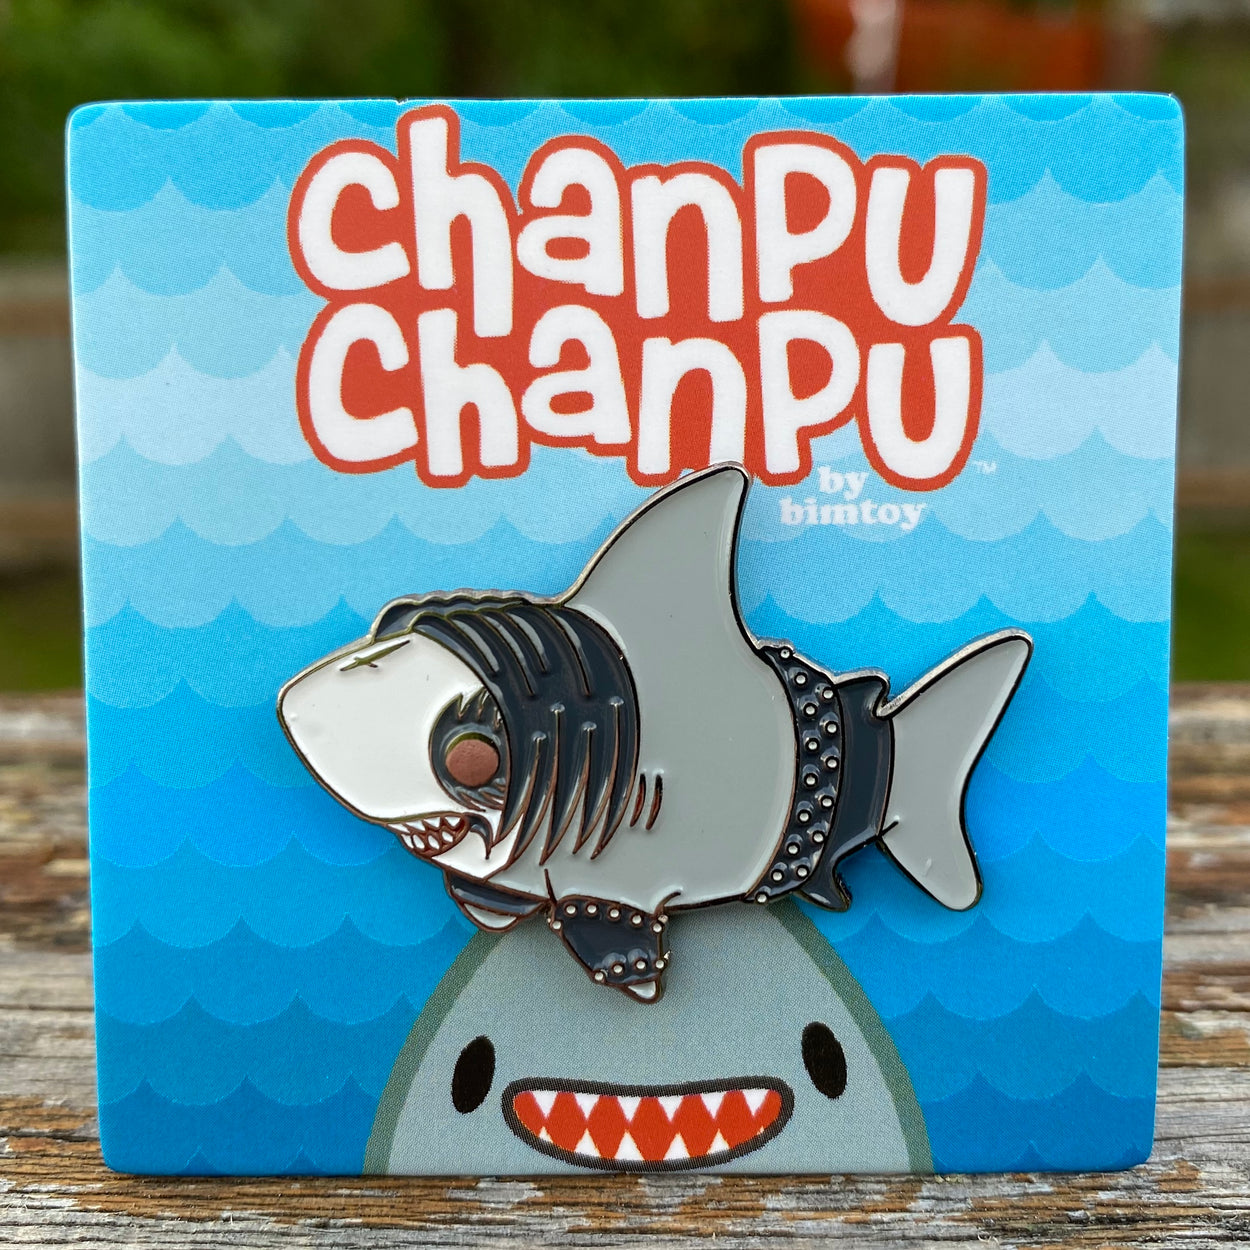 Chanpu Chanpu (Heavy Metal) Enamel Pin